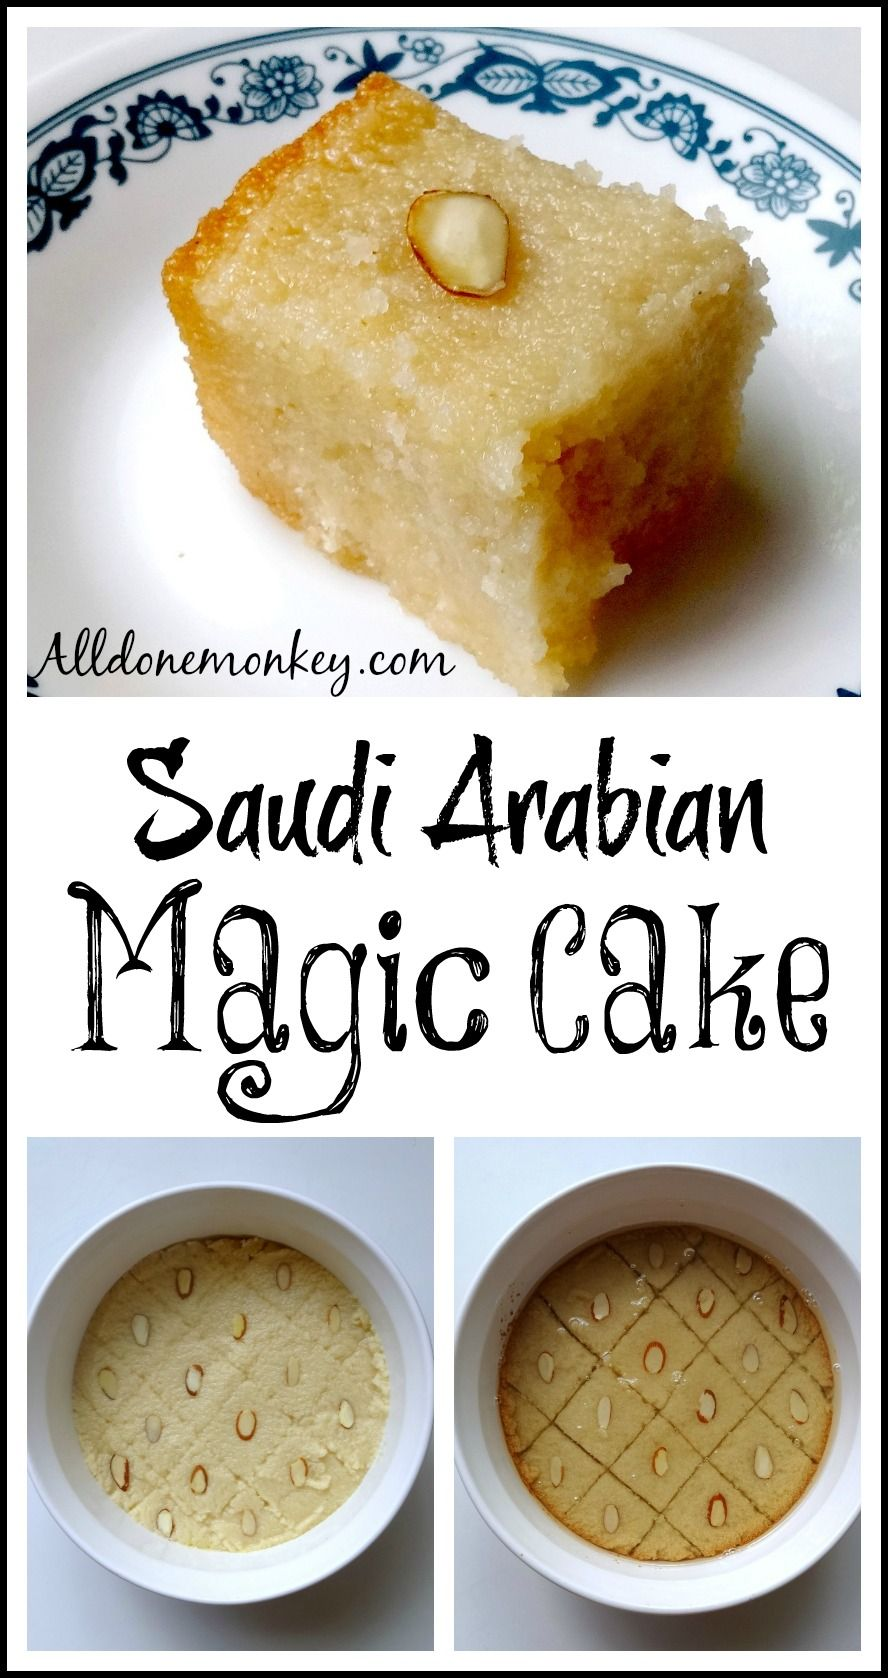 Saudi arabia magic cake around the world in 12 dishes dishes saudi arabia magic cake around the world in 12 dishes forumfinder Images